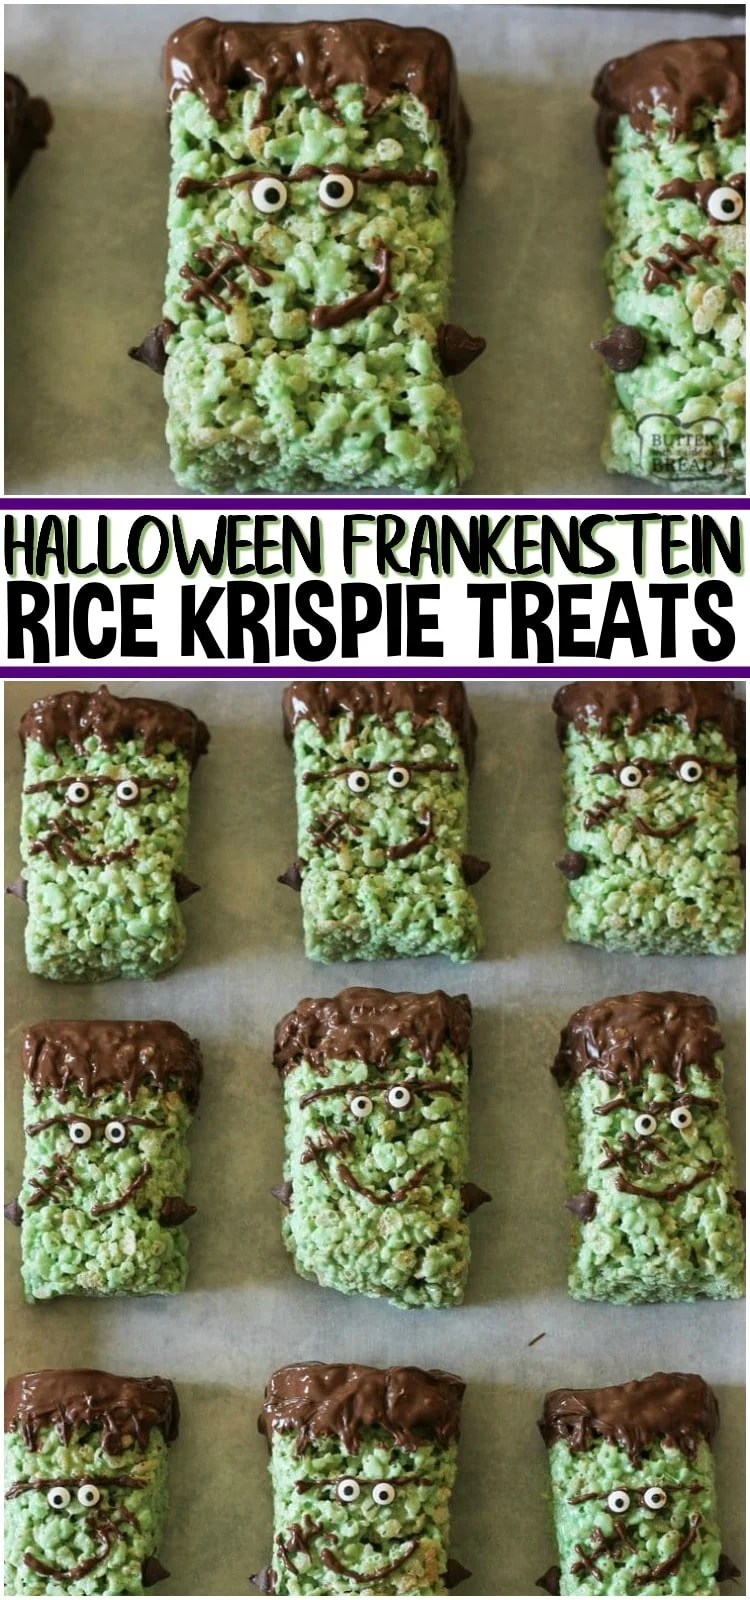 Frankenstein Rice Krispie Treats are cute green Krispie treats dipped in chocolate & made into Frankensteins! Simple Halloween rice Krispie treats perfect for Halloween Parties! #Halloween #Frankenstein #riceKrispies #dessert #marshmallows #classparties #recipe from BUTTER WITH A SIDE OF BREAD